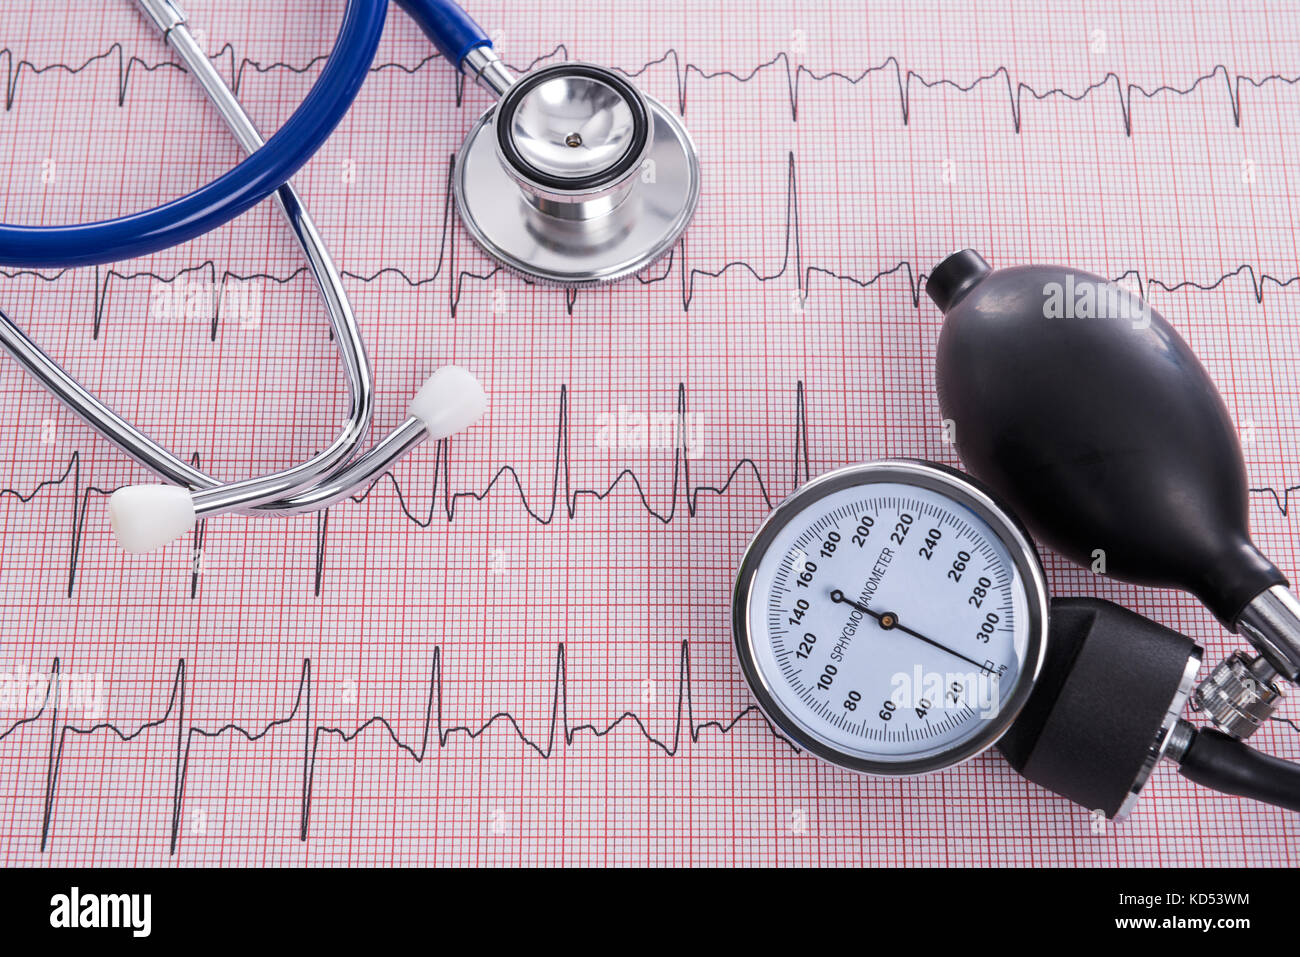 Sphygmomanometer with aneroid gauge and stethoscope with Electrocardiogram paper, still life photo. - Stock Image